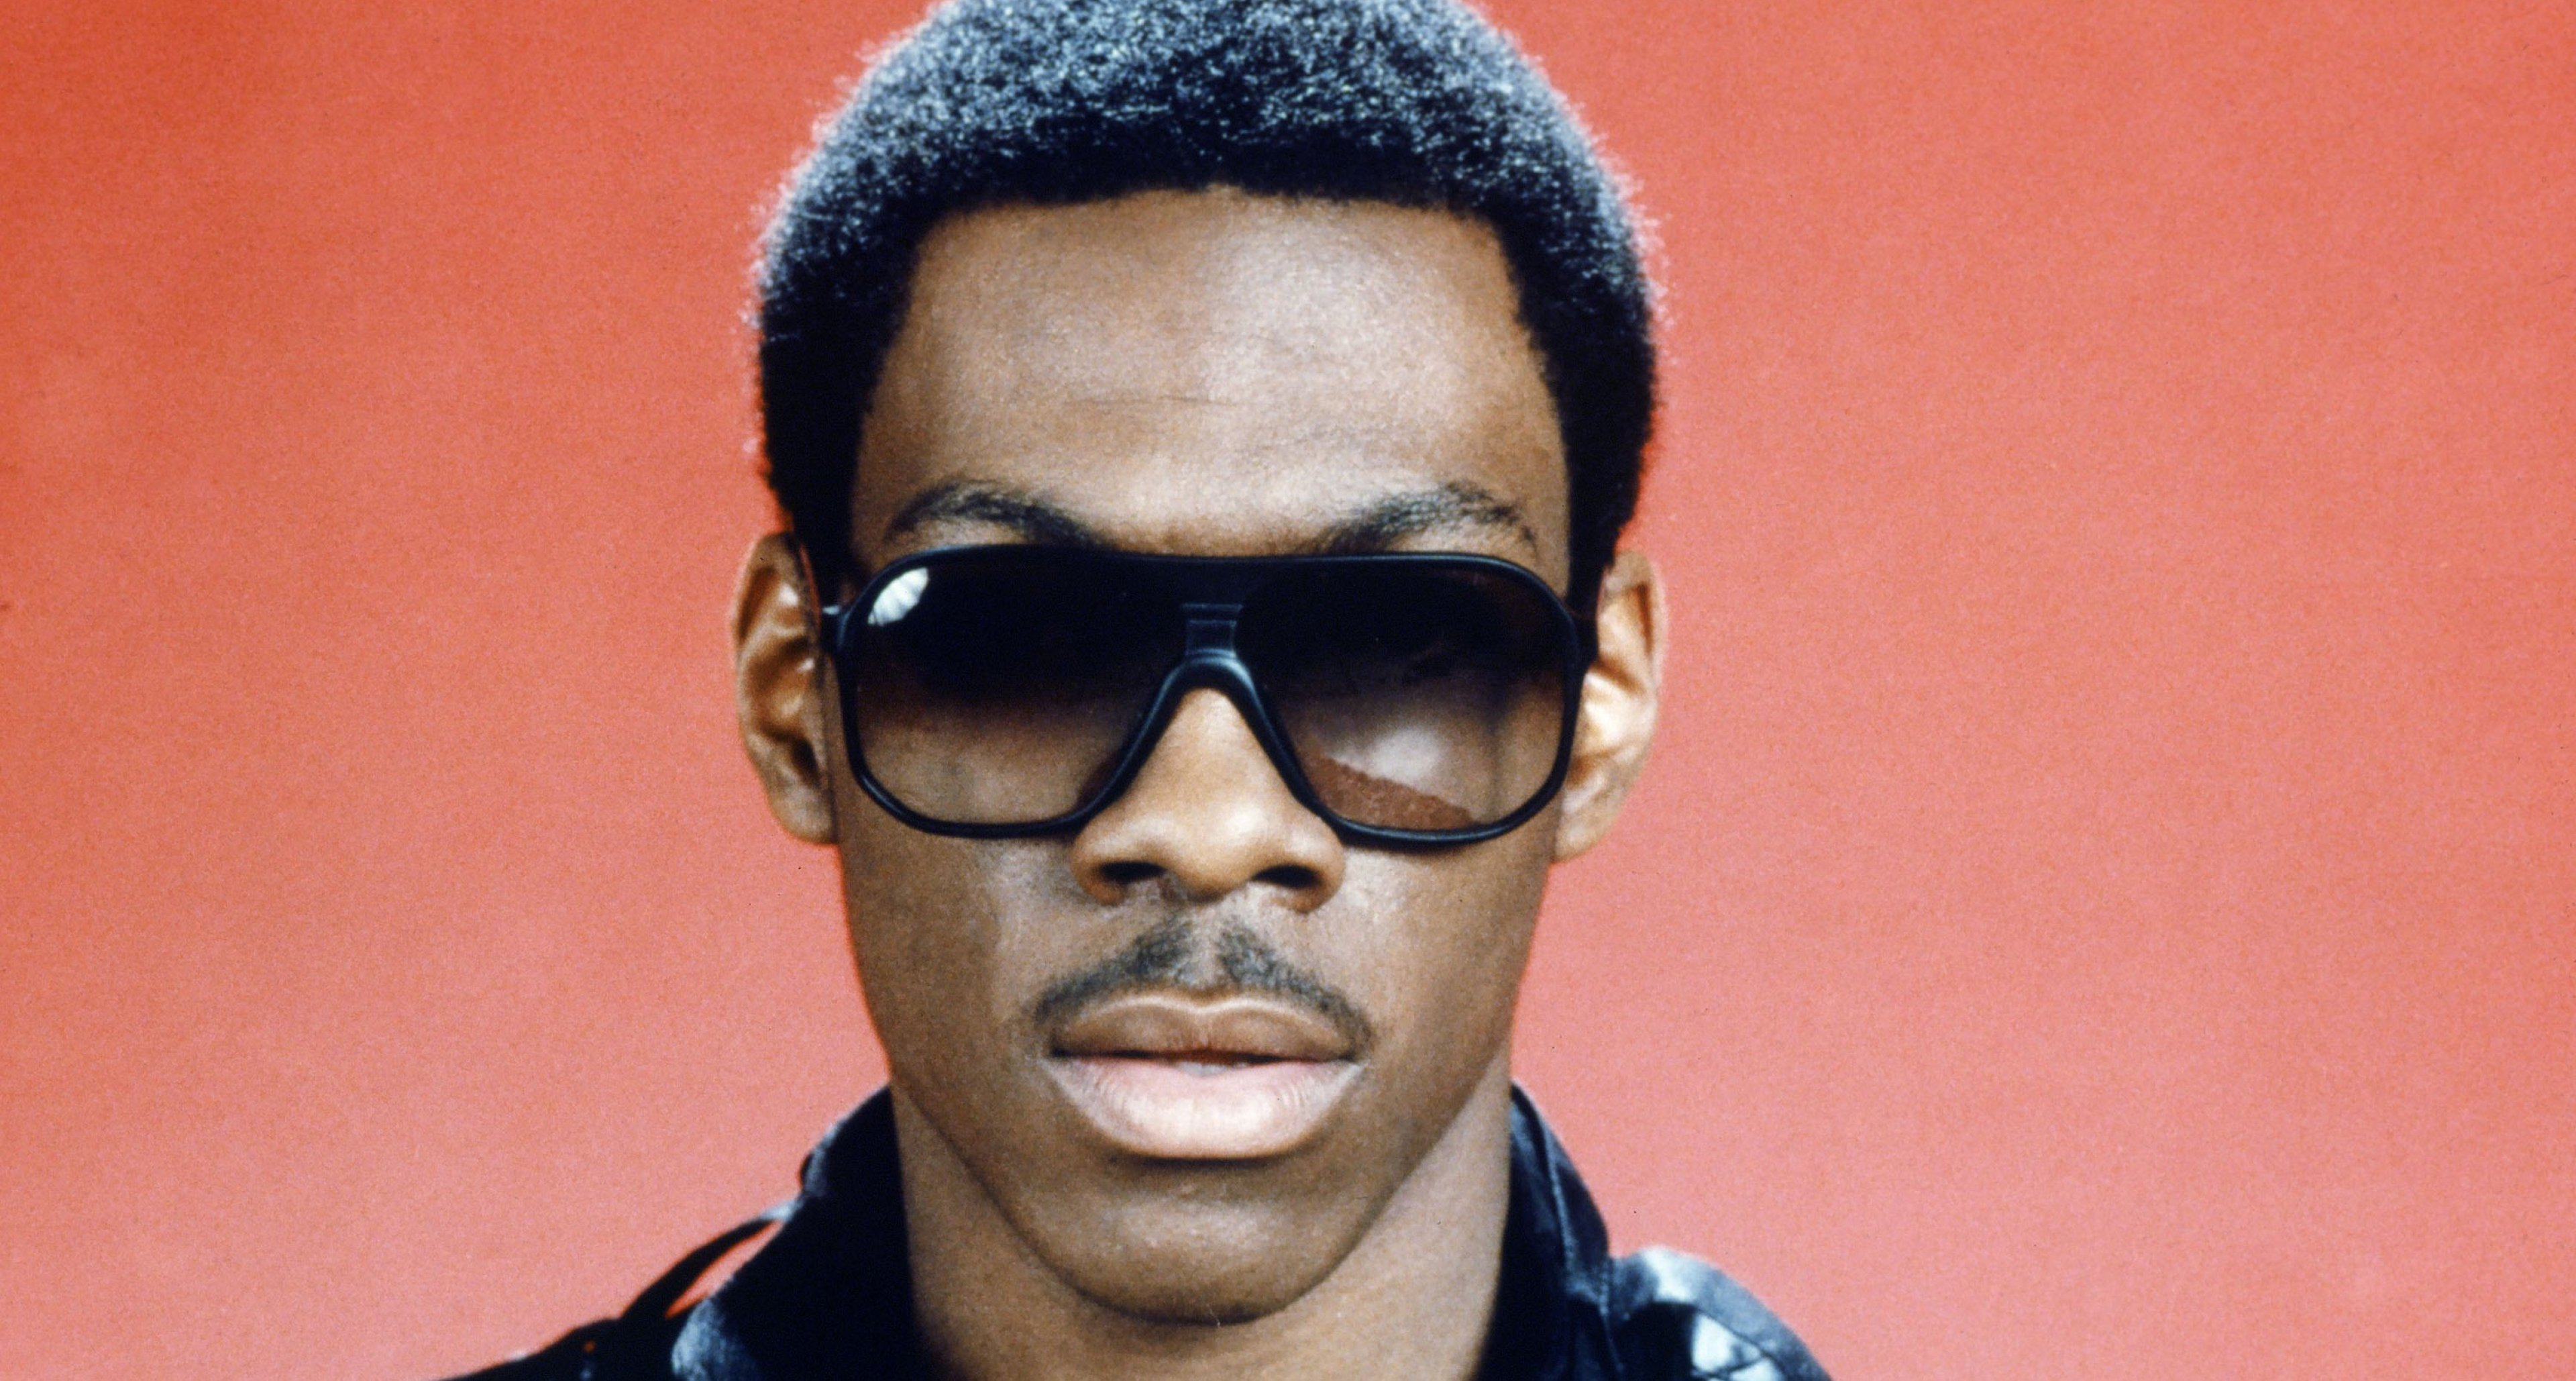 Eddie Murphy at Saturday Night Life in the 1980s.